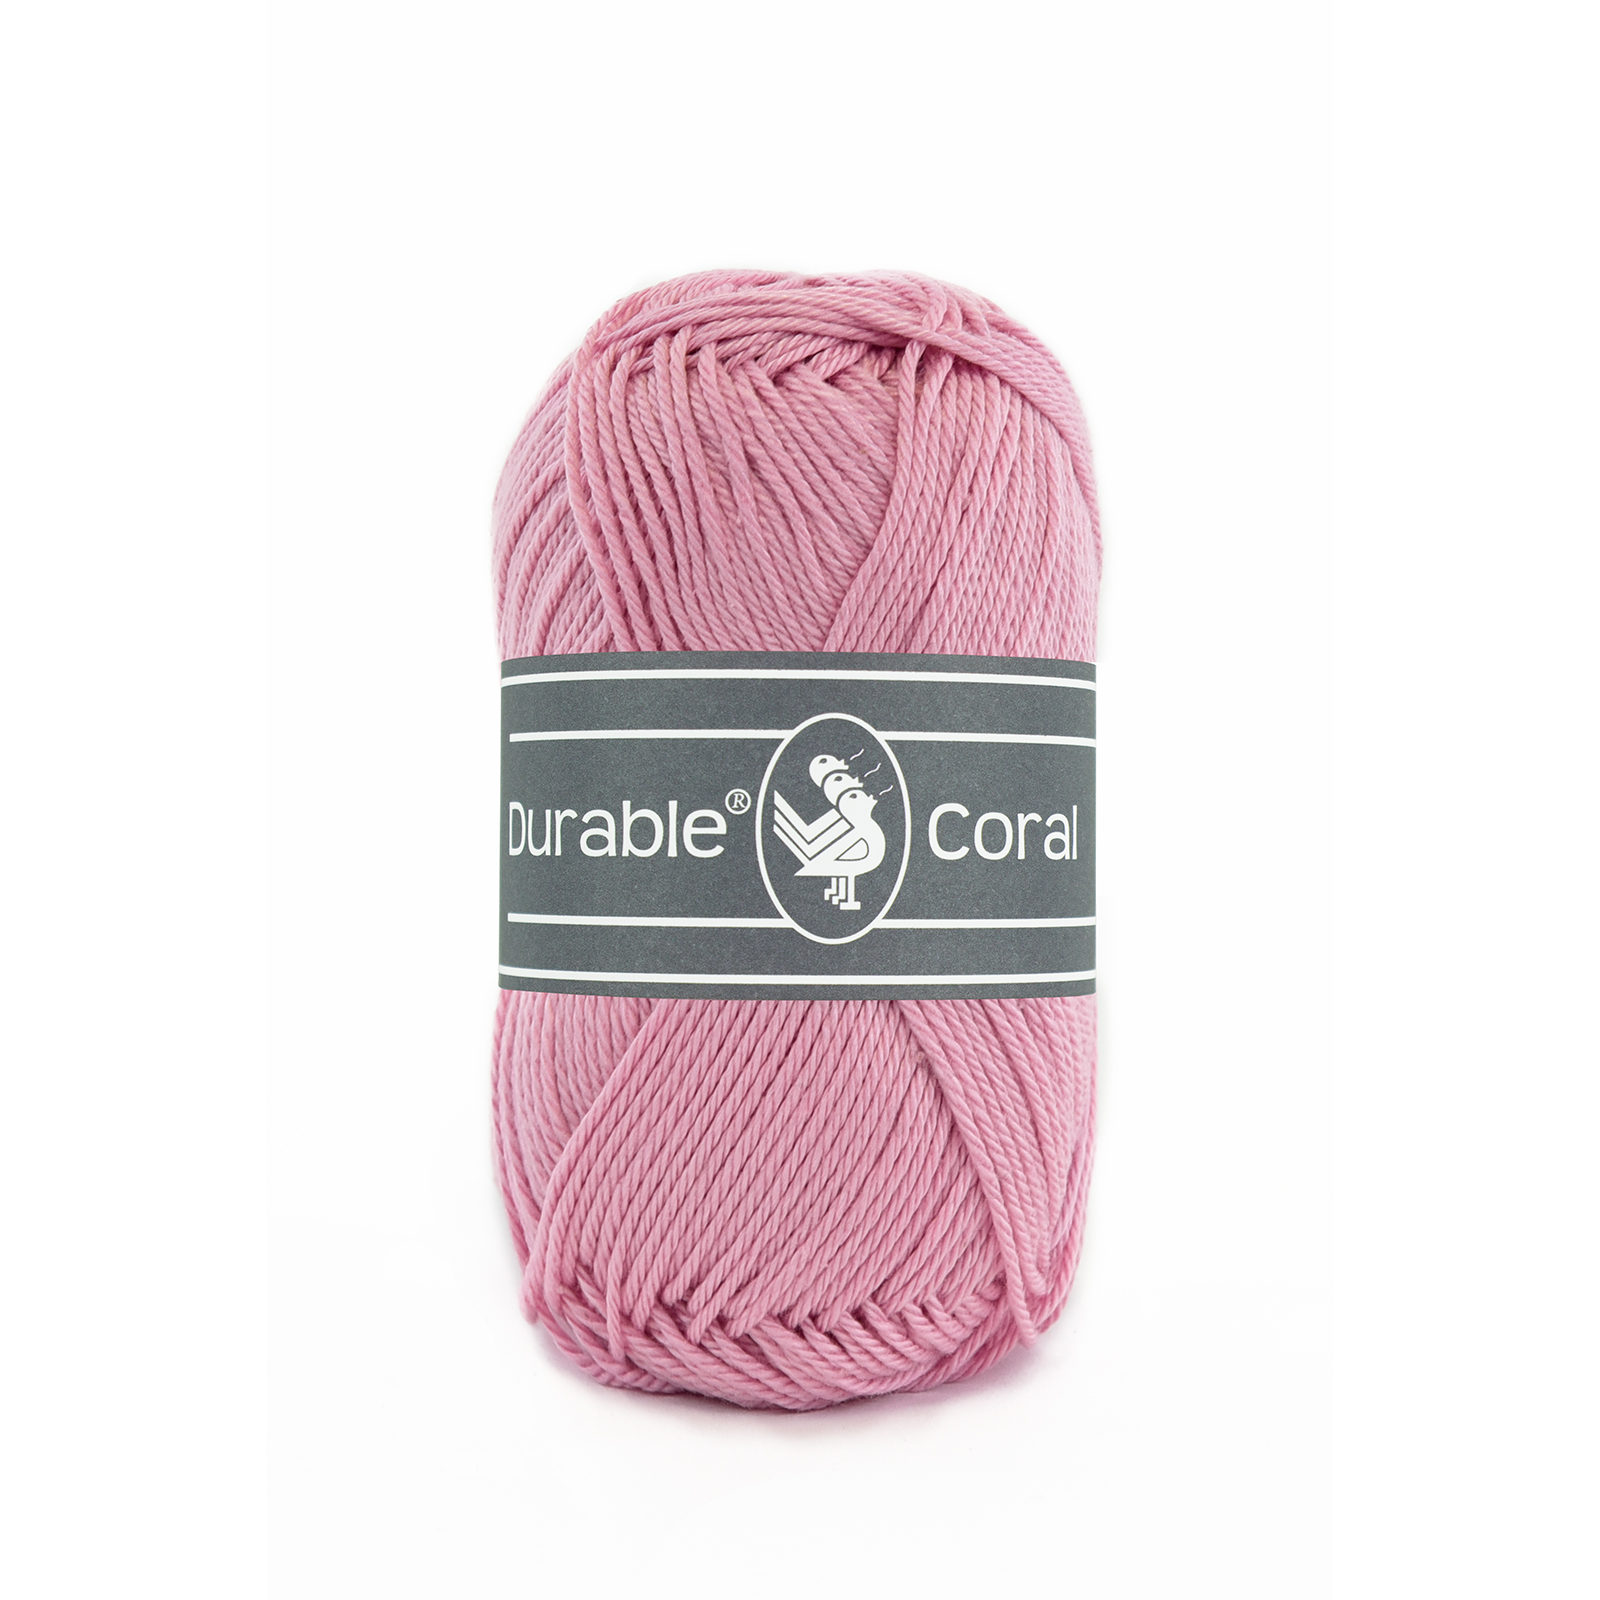 Durable Coral – 224 Old Rose